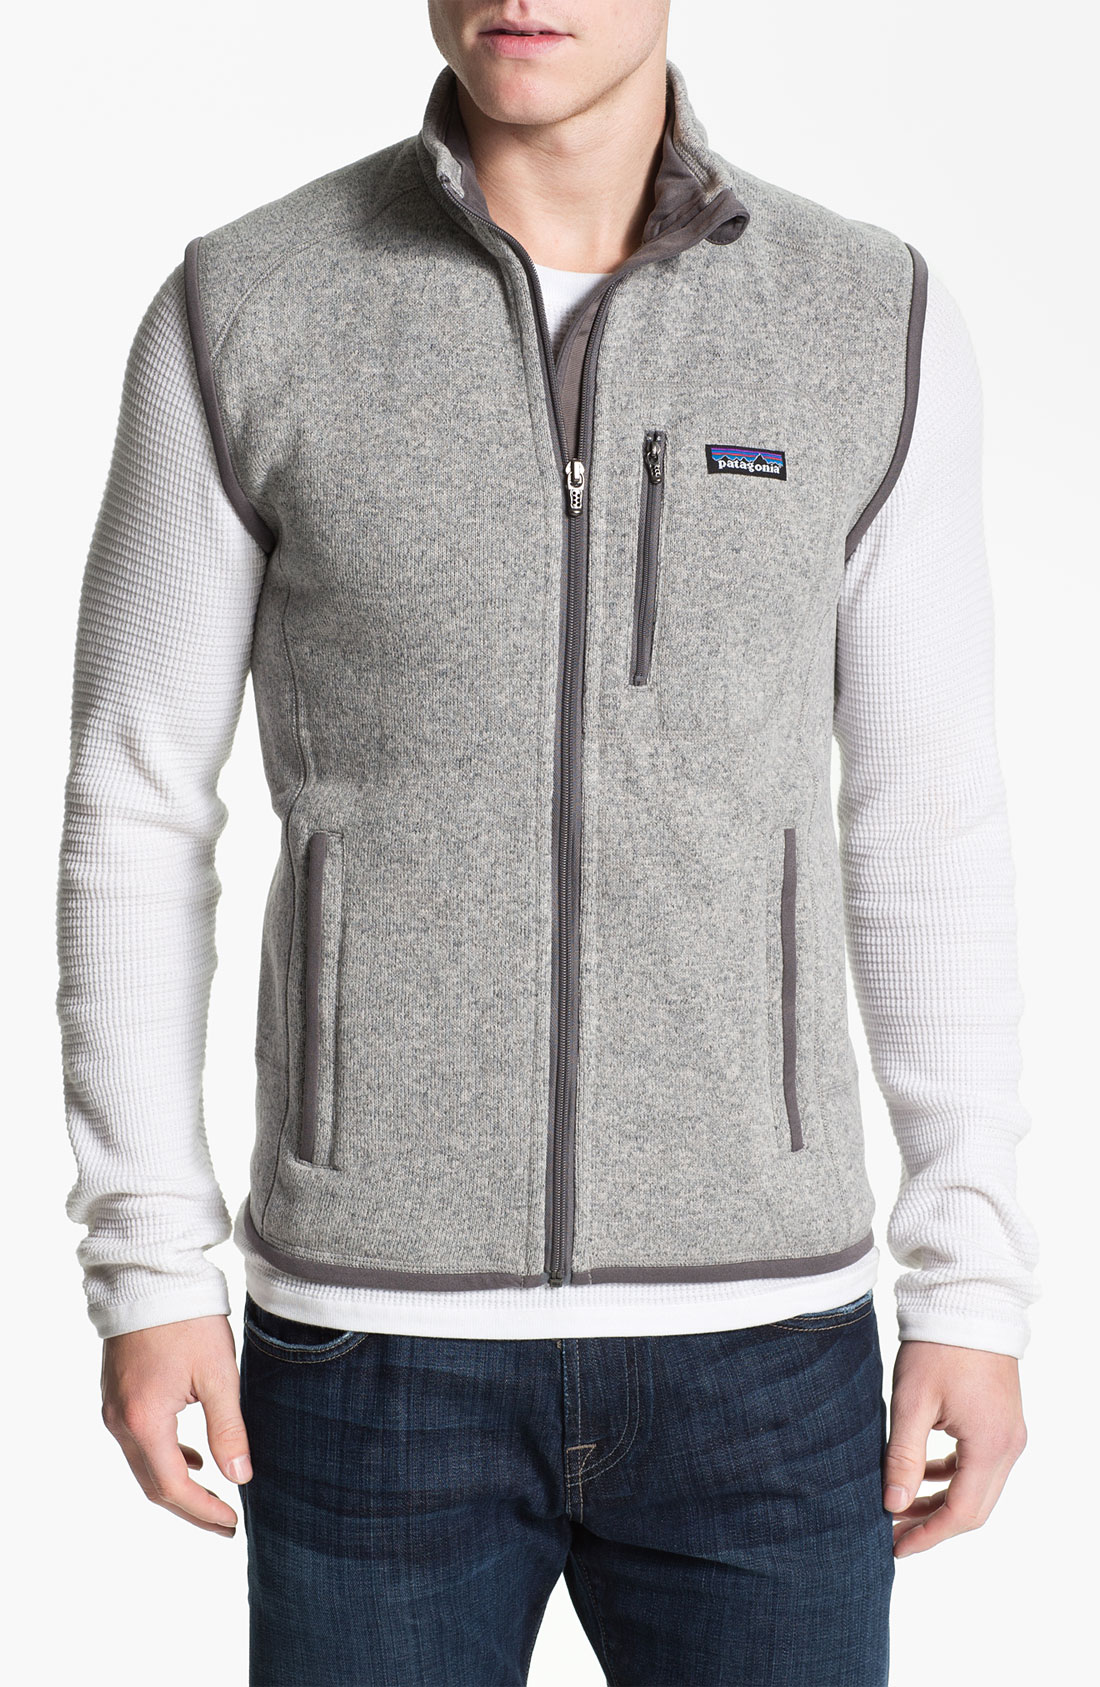 Patagonia Better Sweater Vest Grey - Cardigan With Buttons